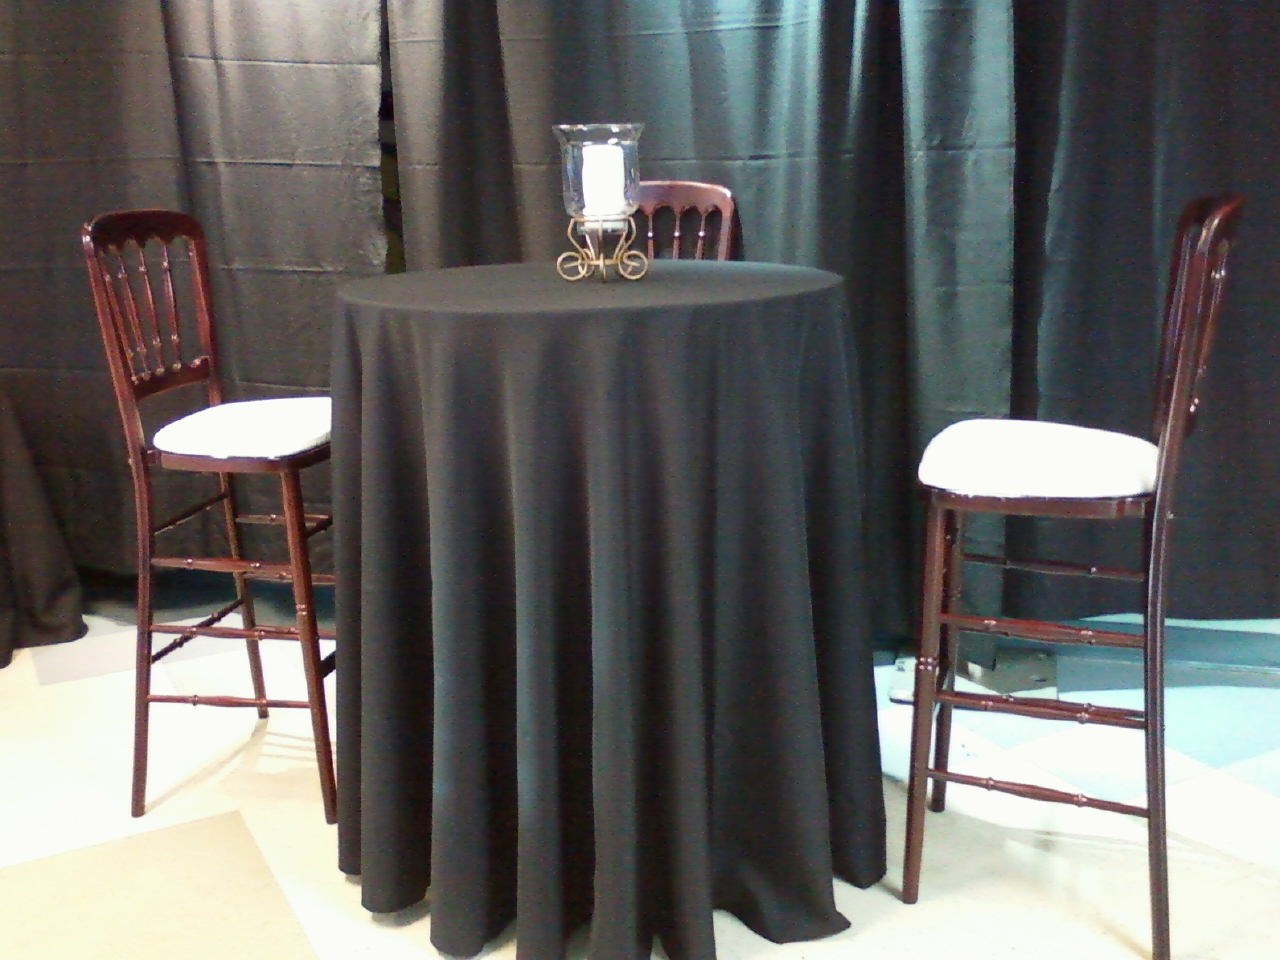 bistro table with bar stools.jpg